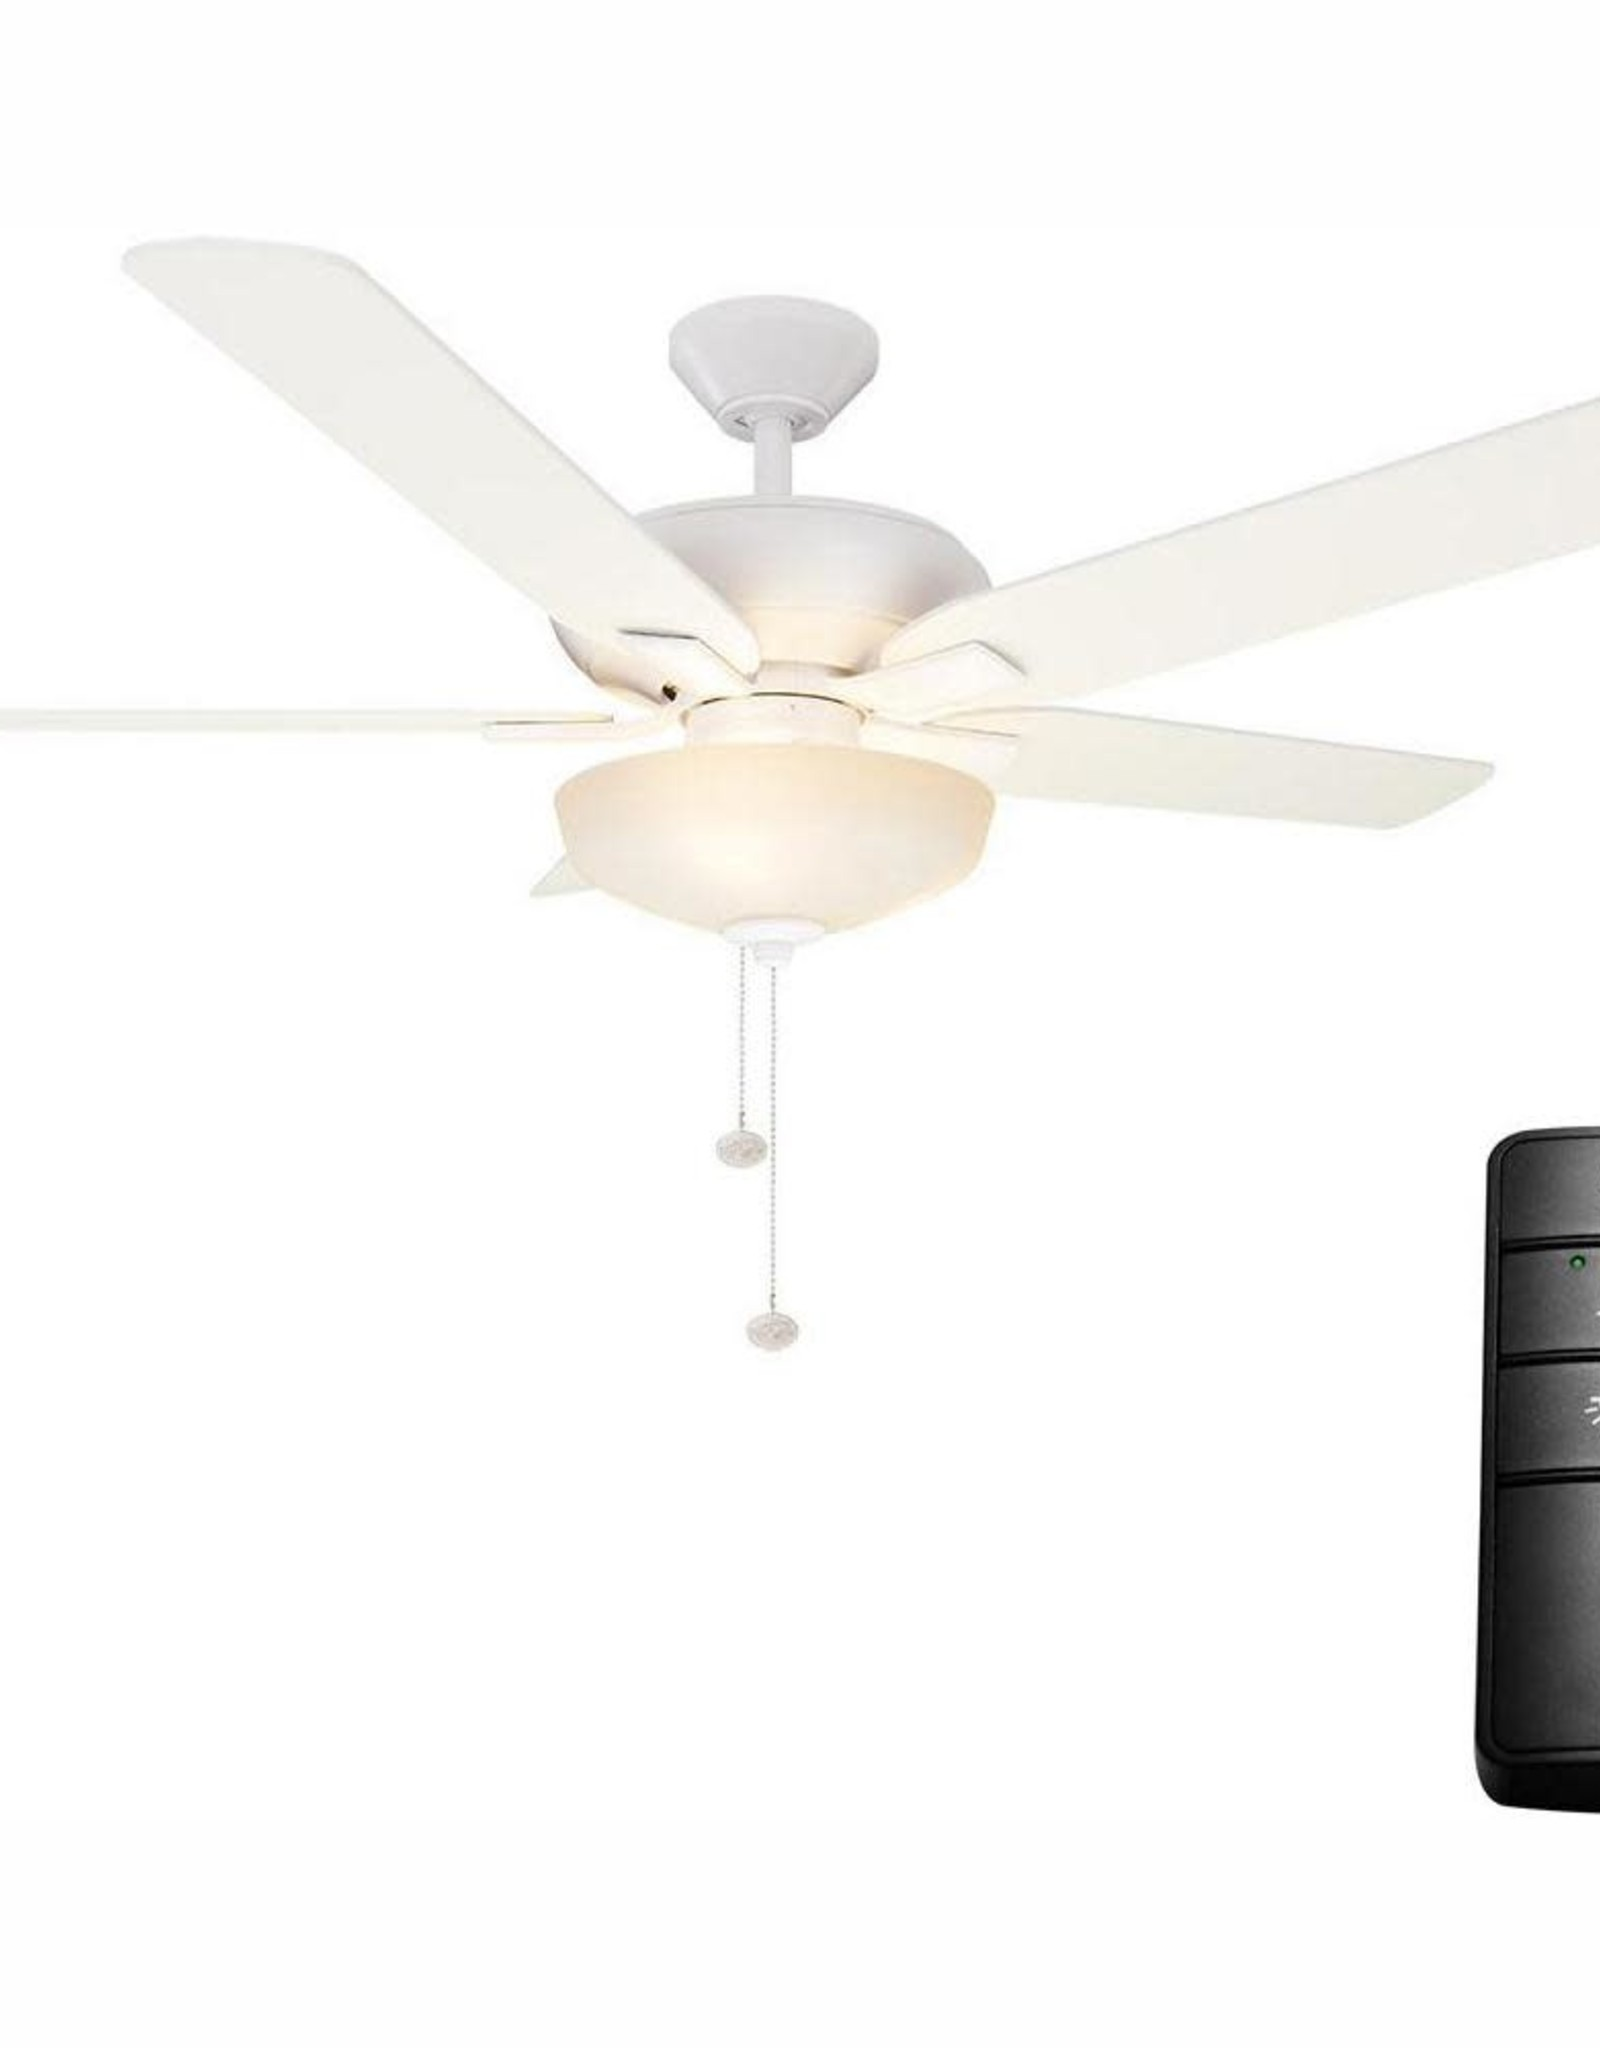 Hampton Bay Holly Springs 52 in. LED Matte White Ceiling Fan with Light Kit and Remote Control